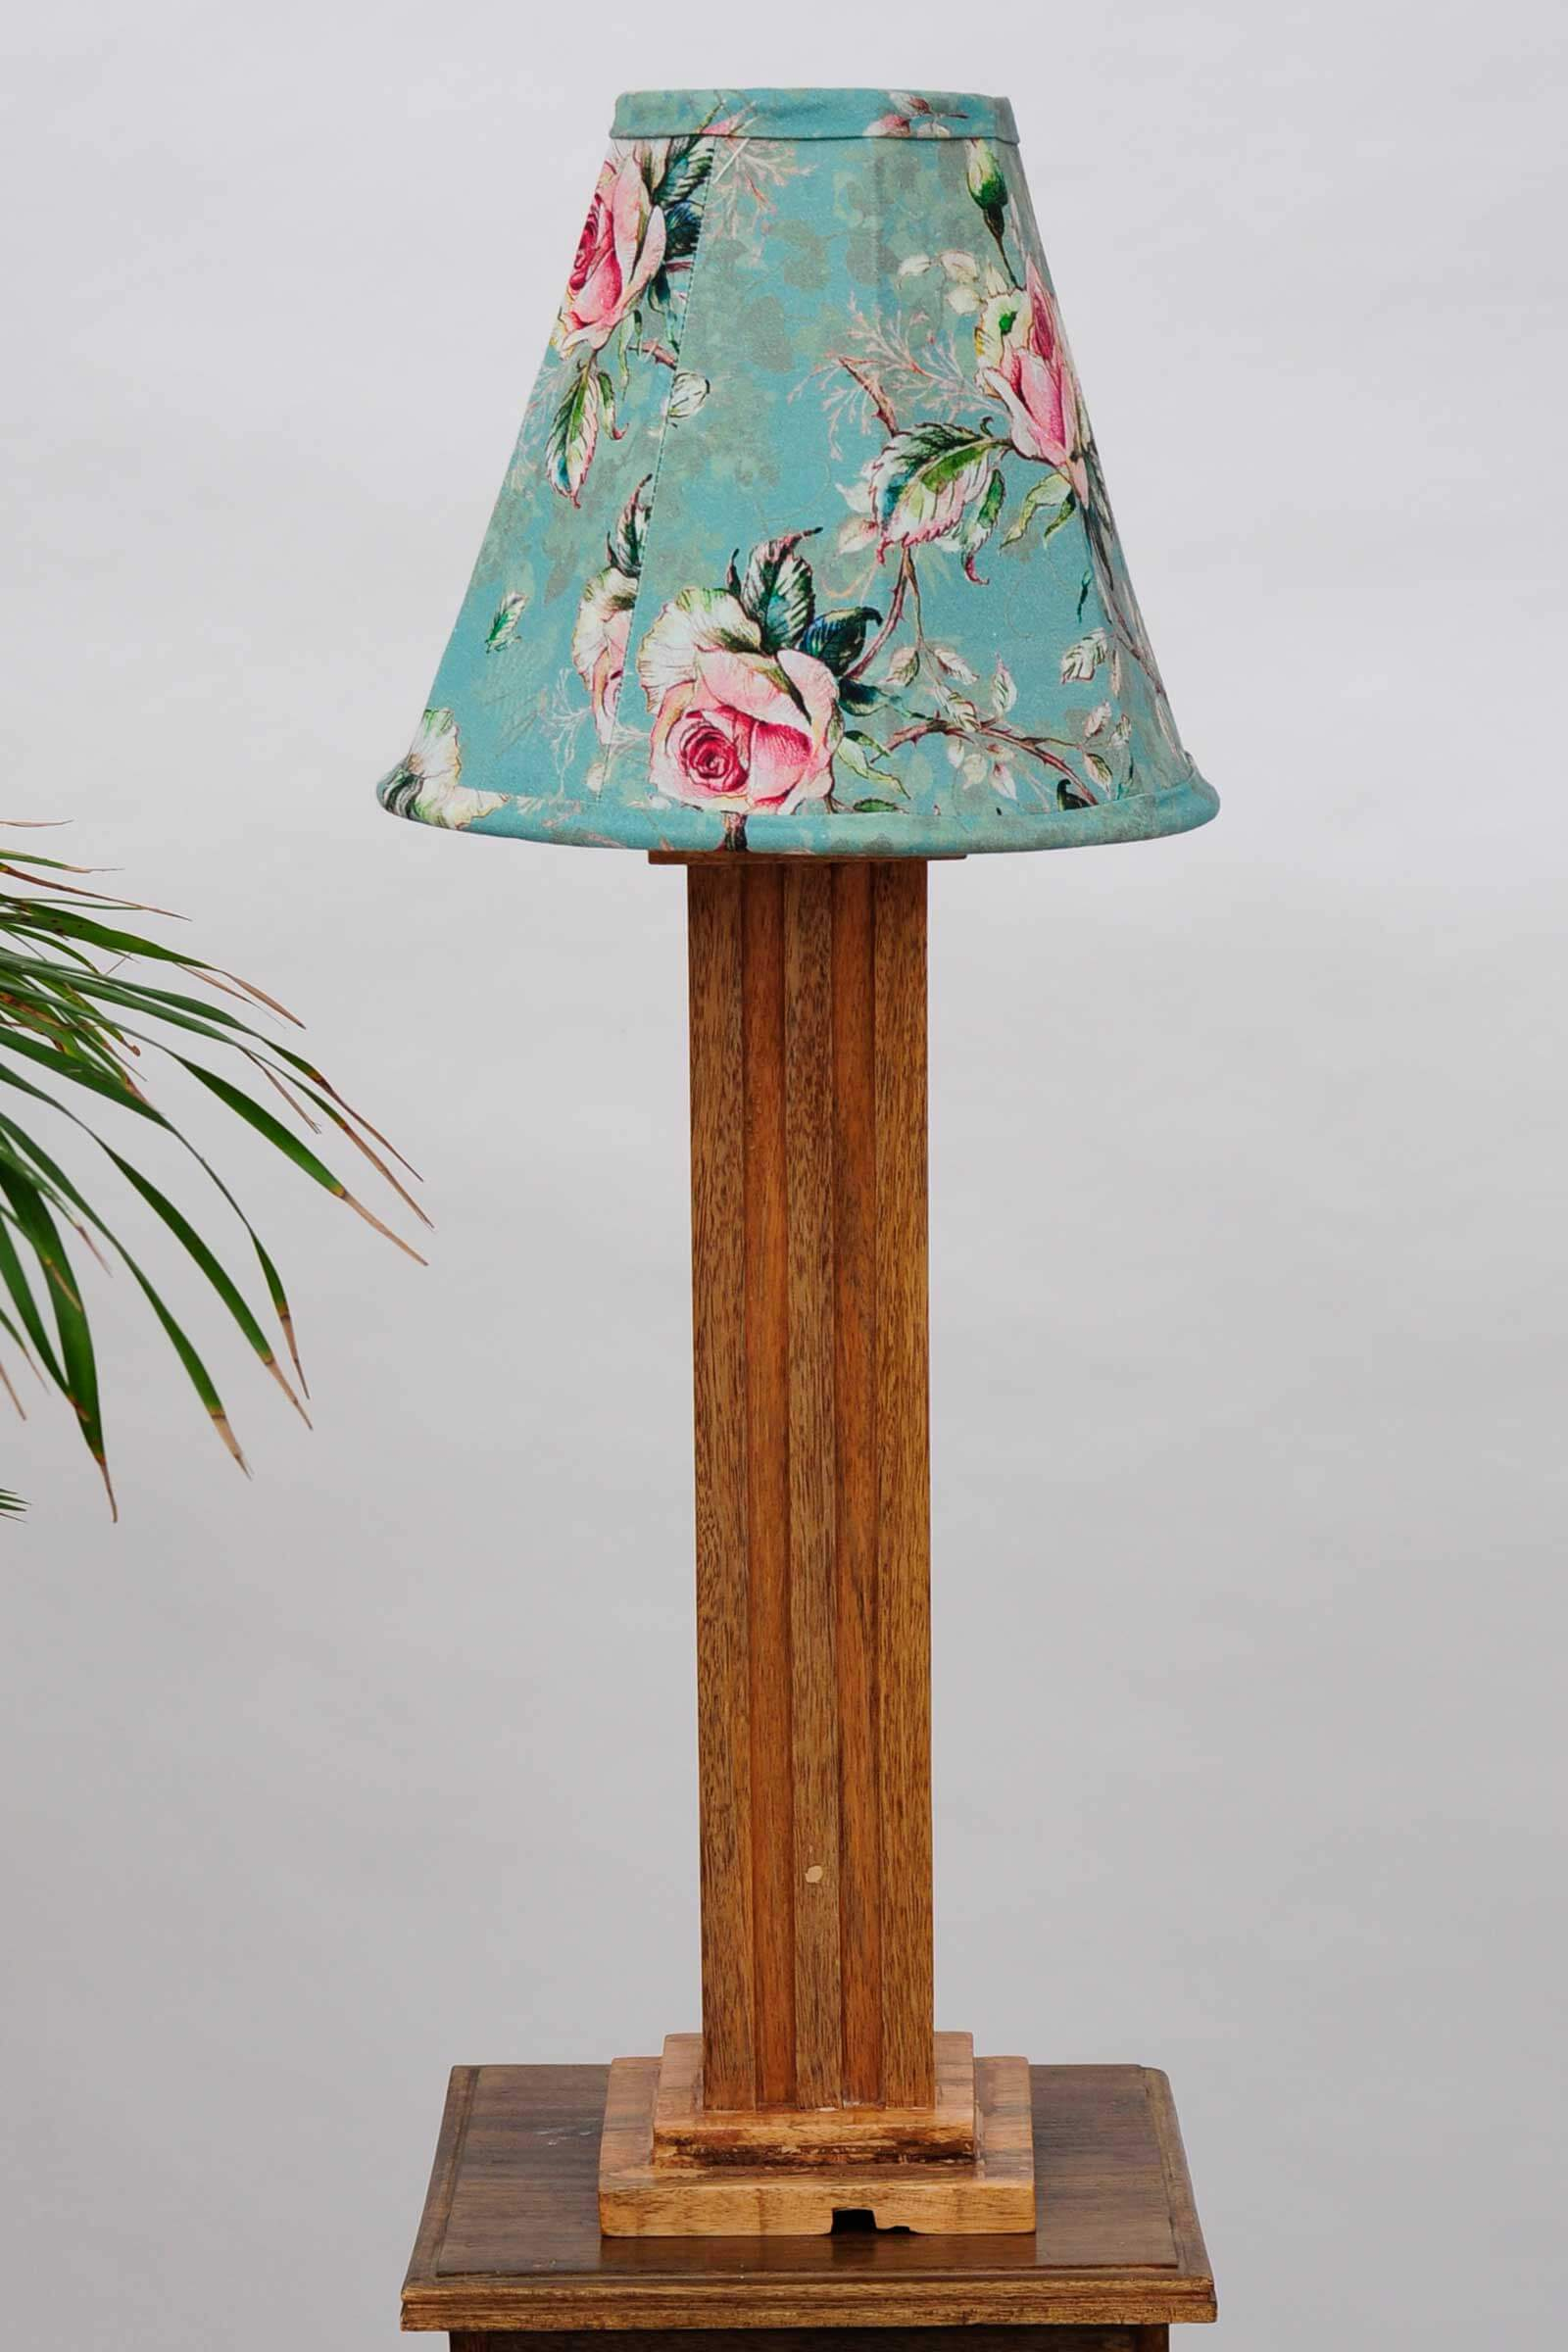 Vintage rose lamp shade